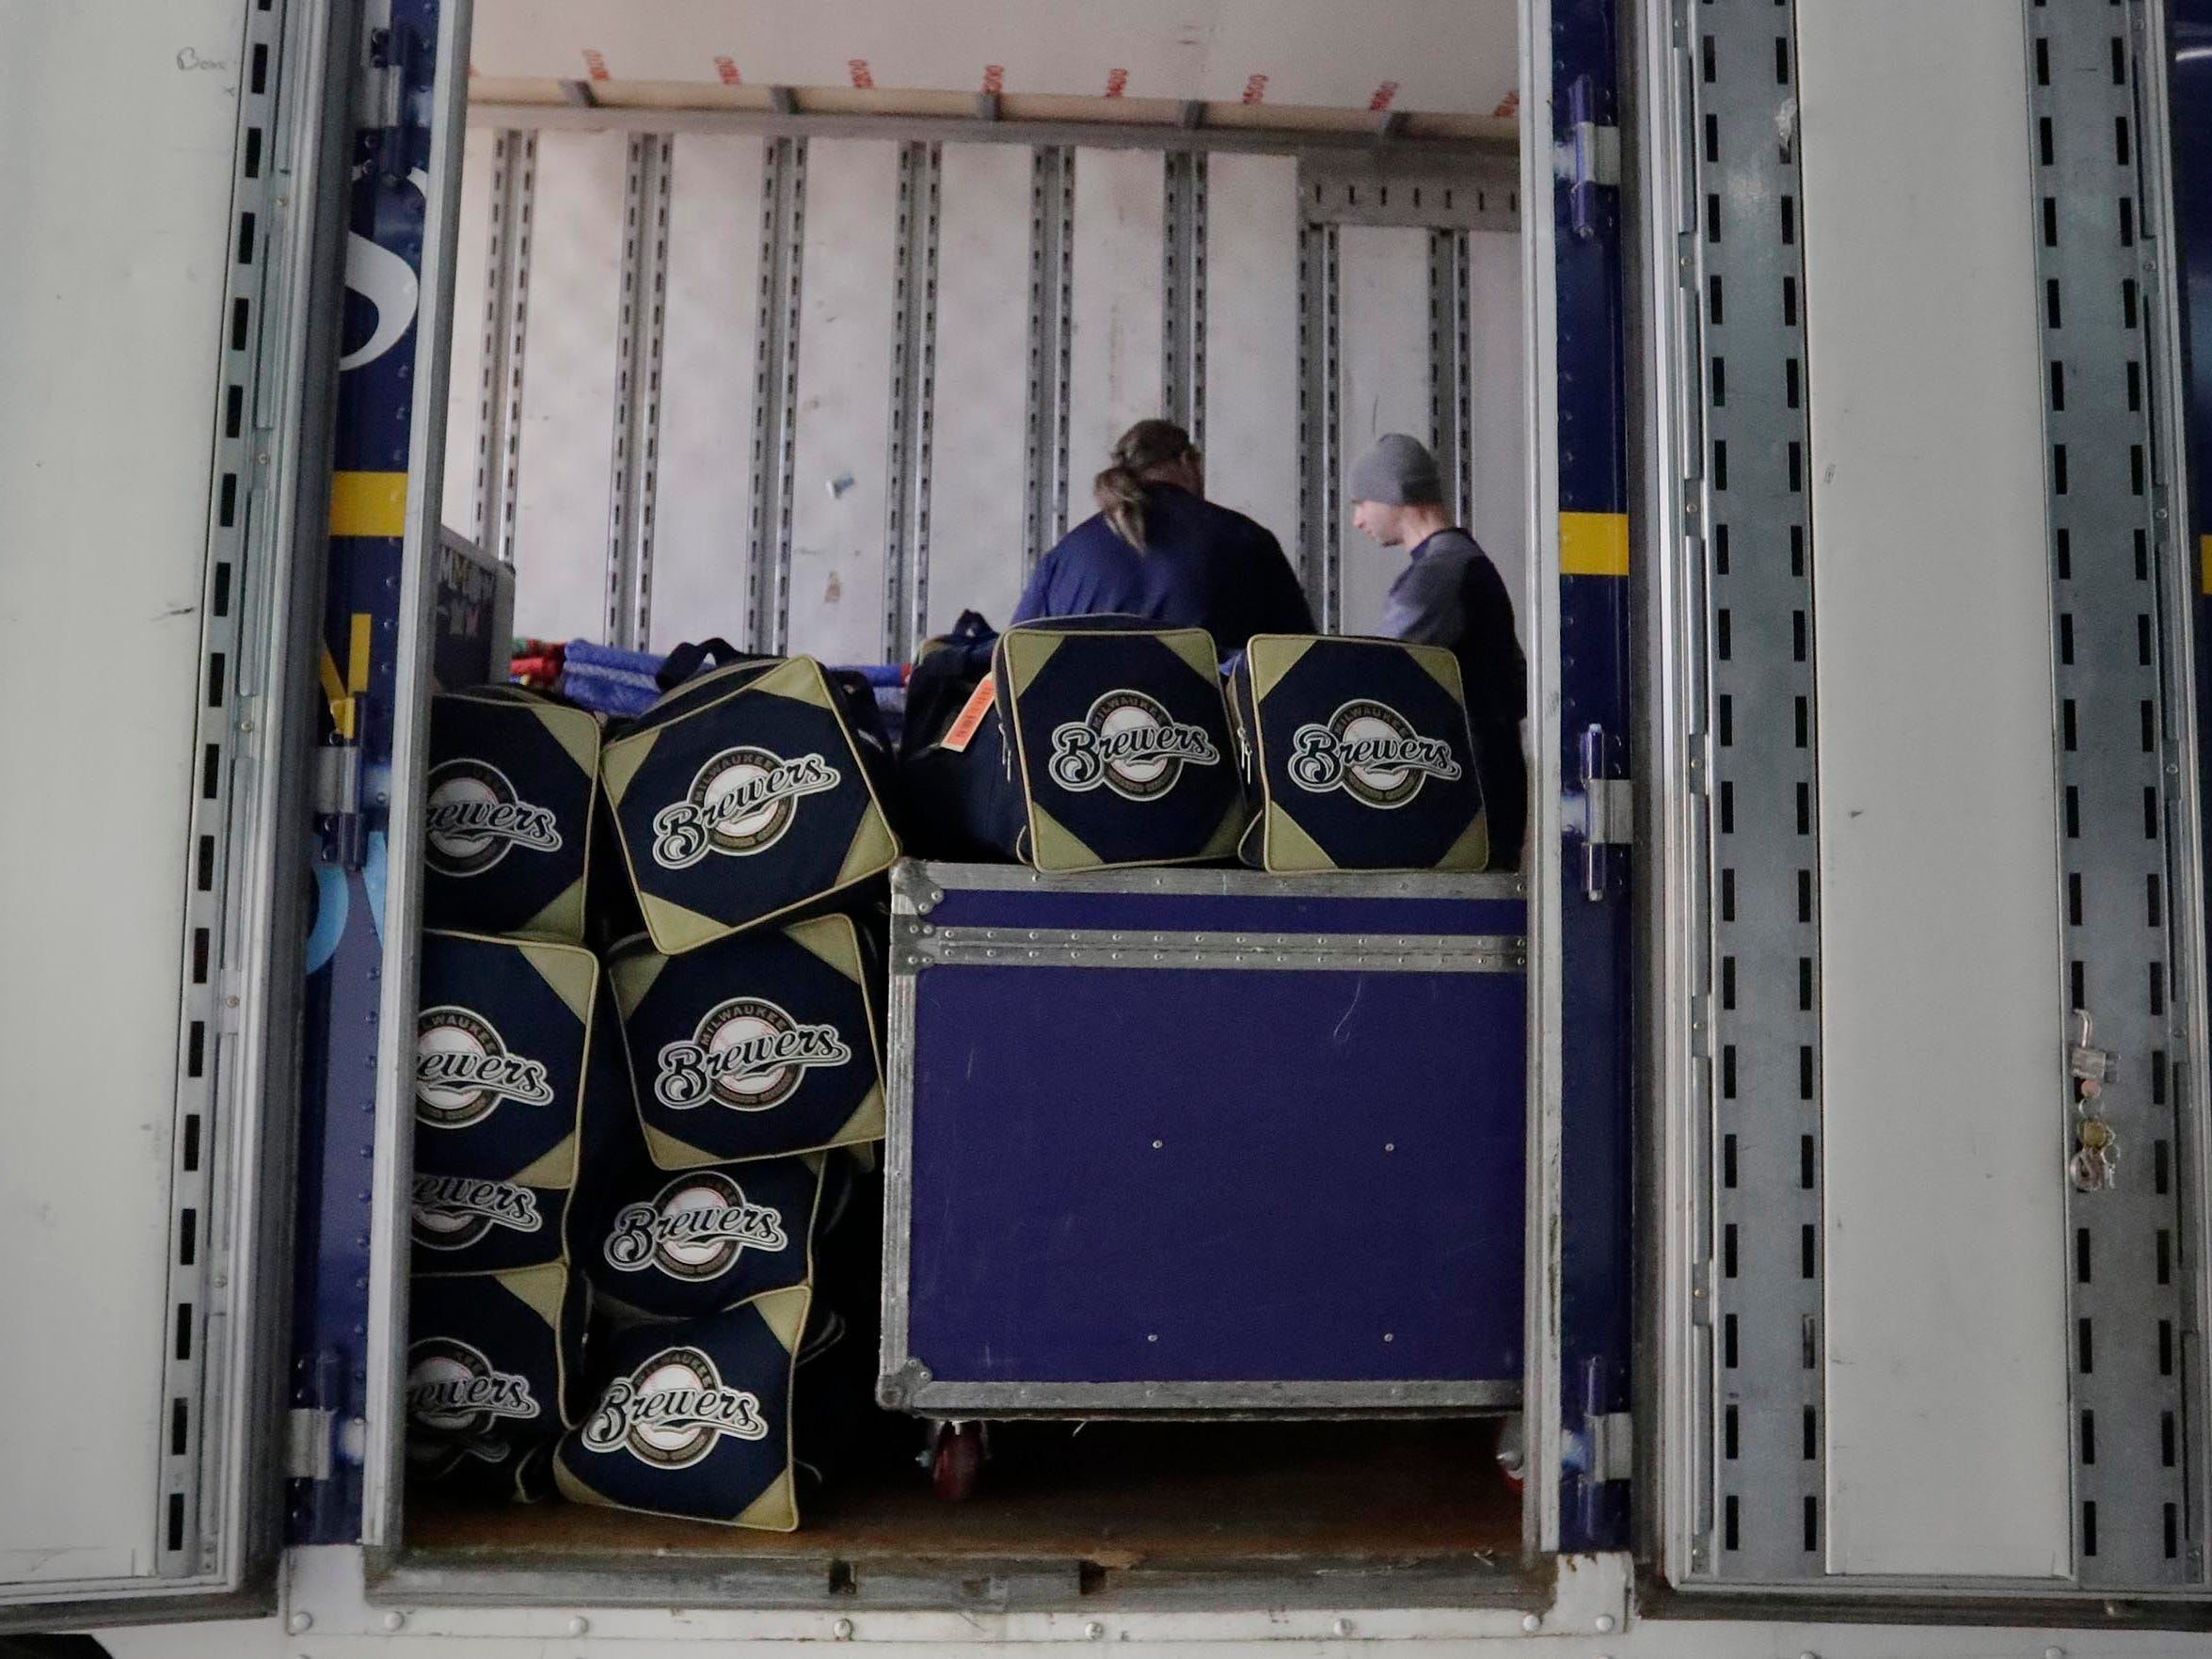 The show is going on the road as clubhouse workers stack bags and make room in the semi-trailer headed from Miller Park to spring training in Phoenix.